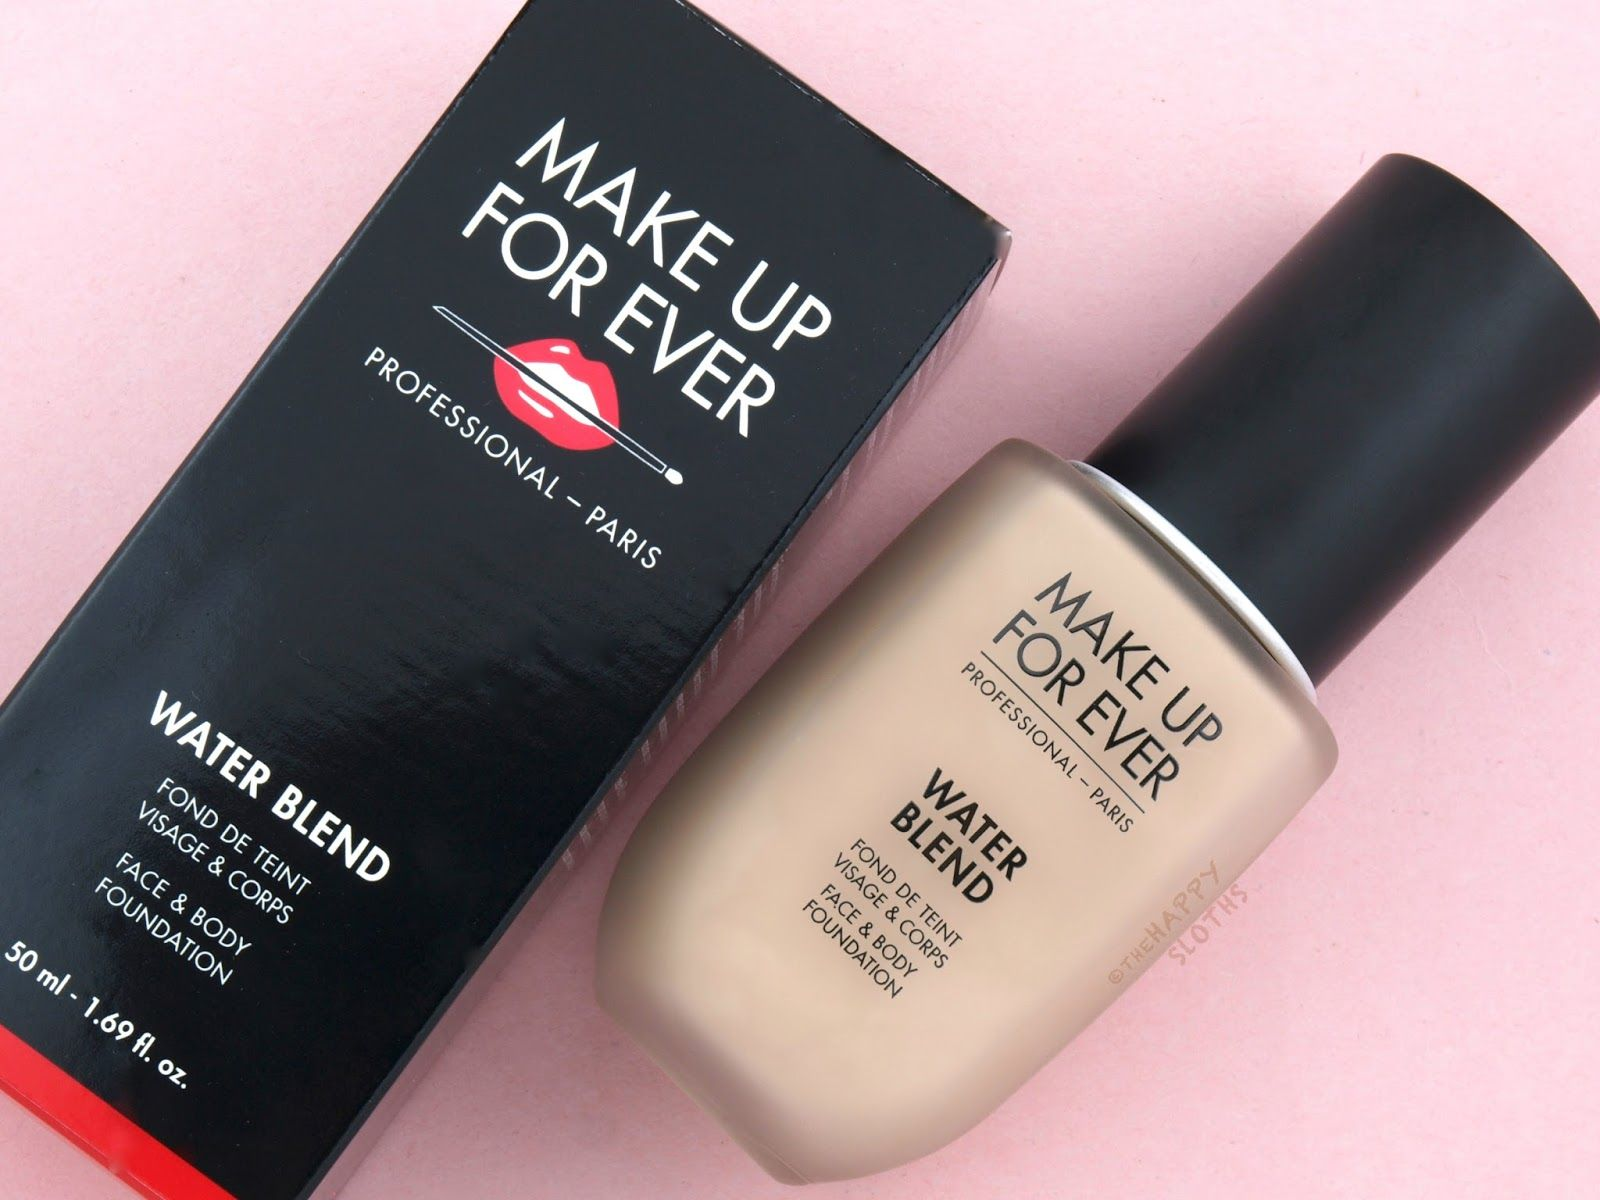 Make Up For Ever Water Blend Face & Body Foundation in